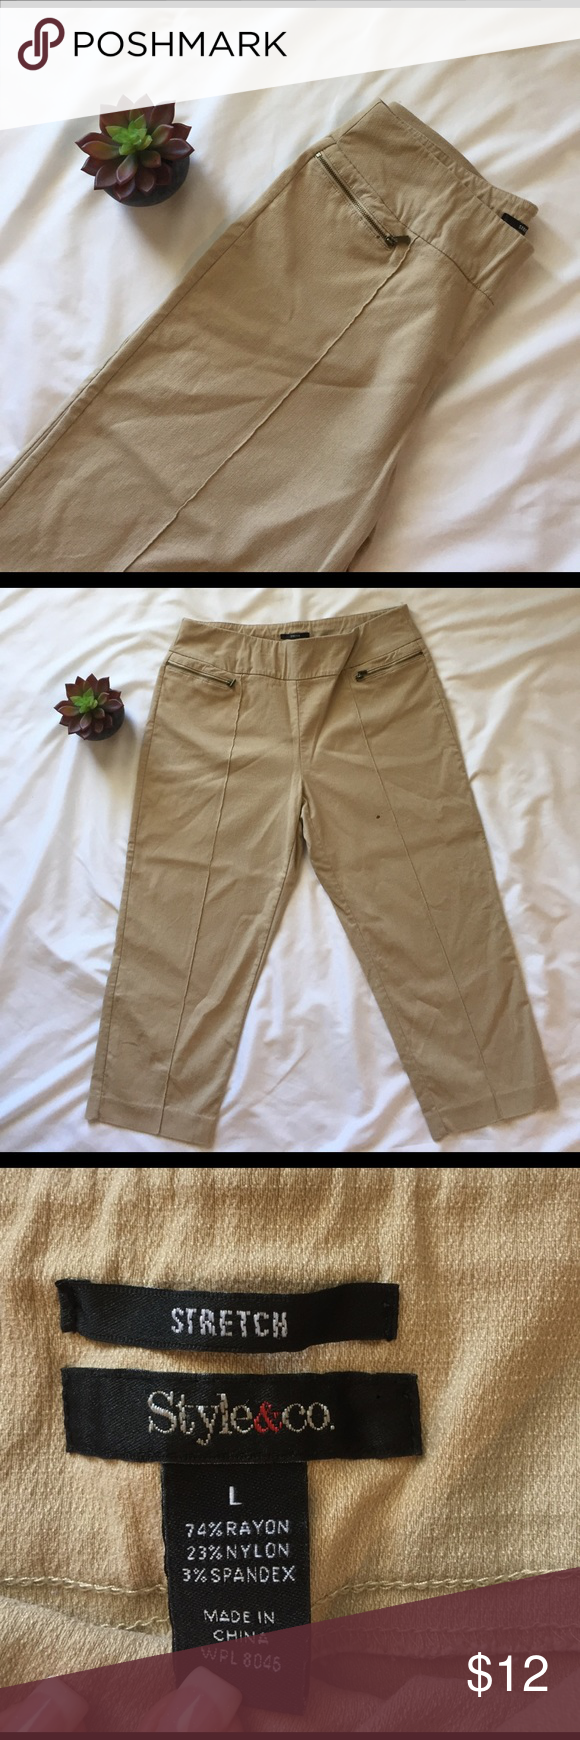 Style & Co Capri Excellent Condition!  21 inch inseam and has a lot of stretch to them with 3% Spandex. Very comfortable Style & Co Pants Capris